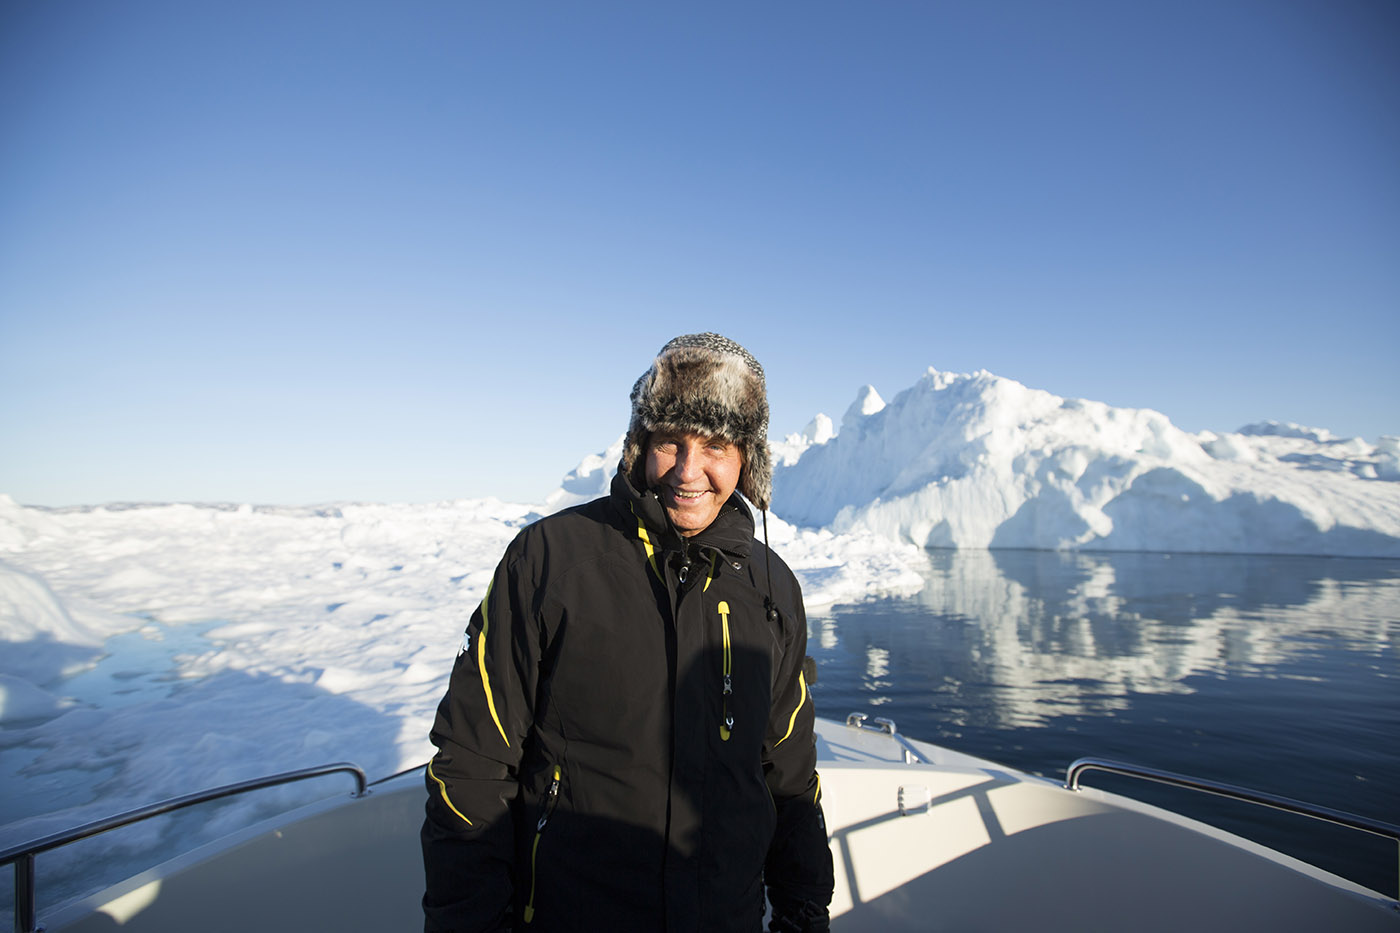 Geoffery Kent poses on boat infront of ice berg